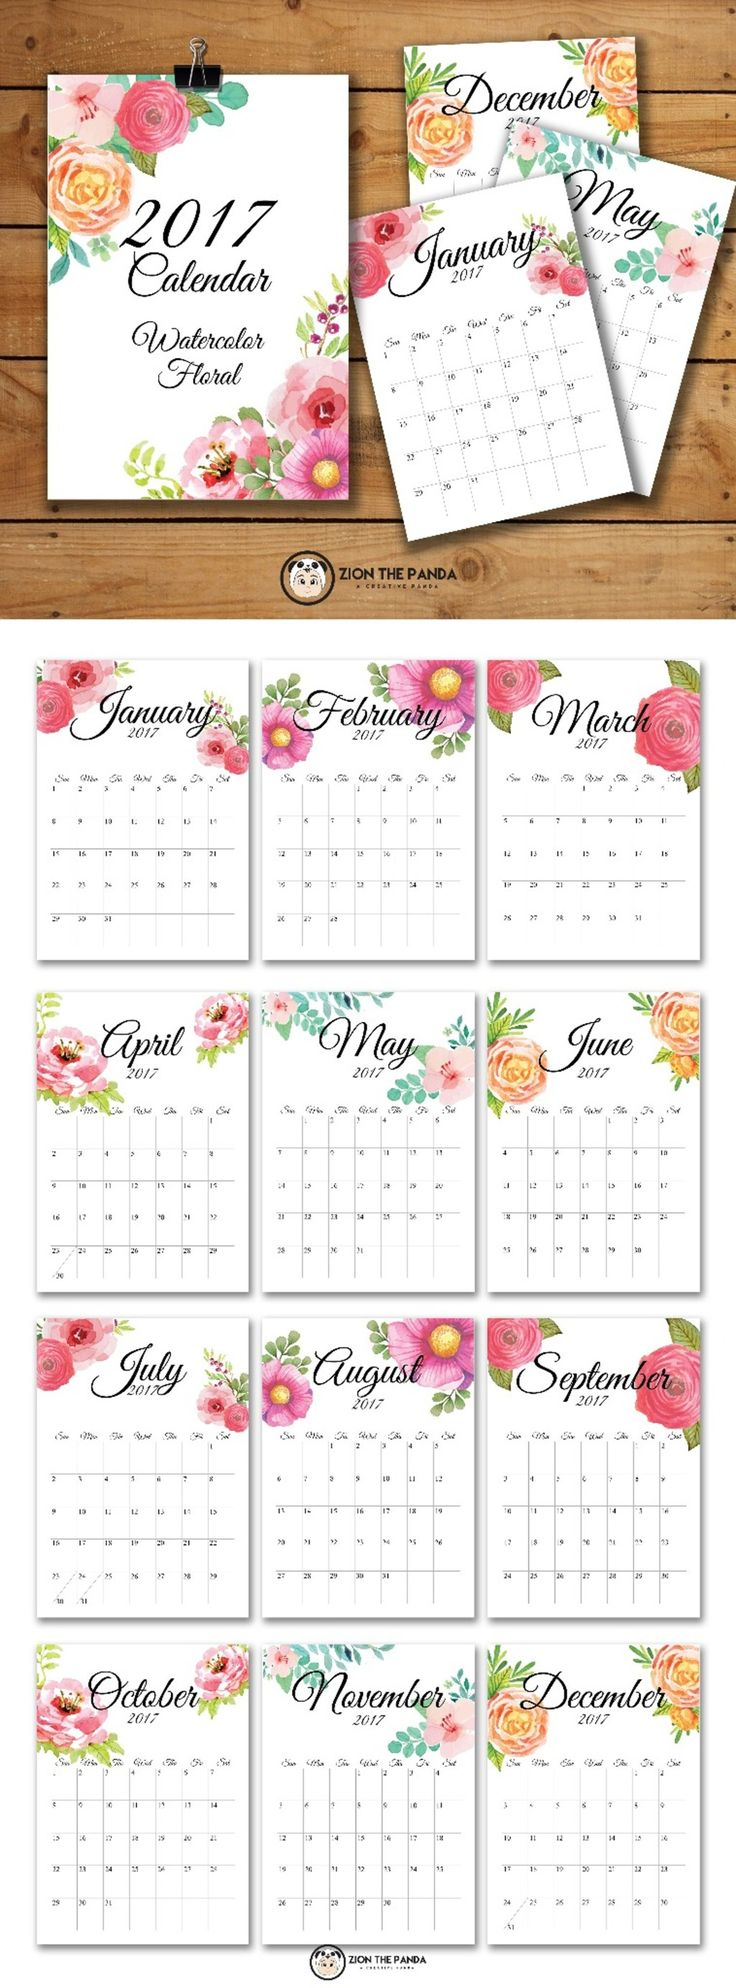 2017 Monthly Calendar - Floral (printable) - Zion The Panda                                                                                                                                                                                 More